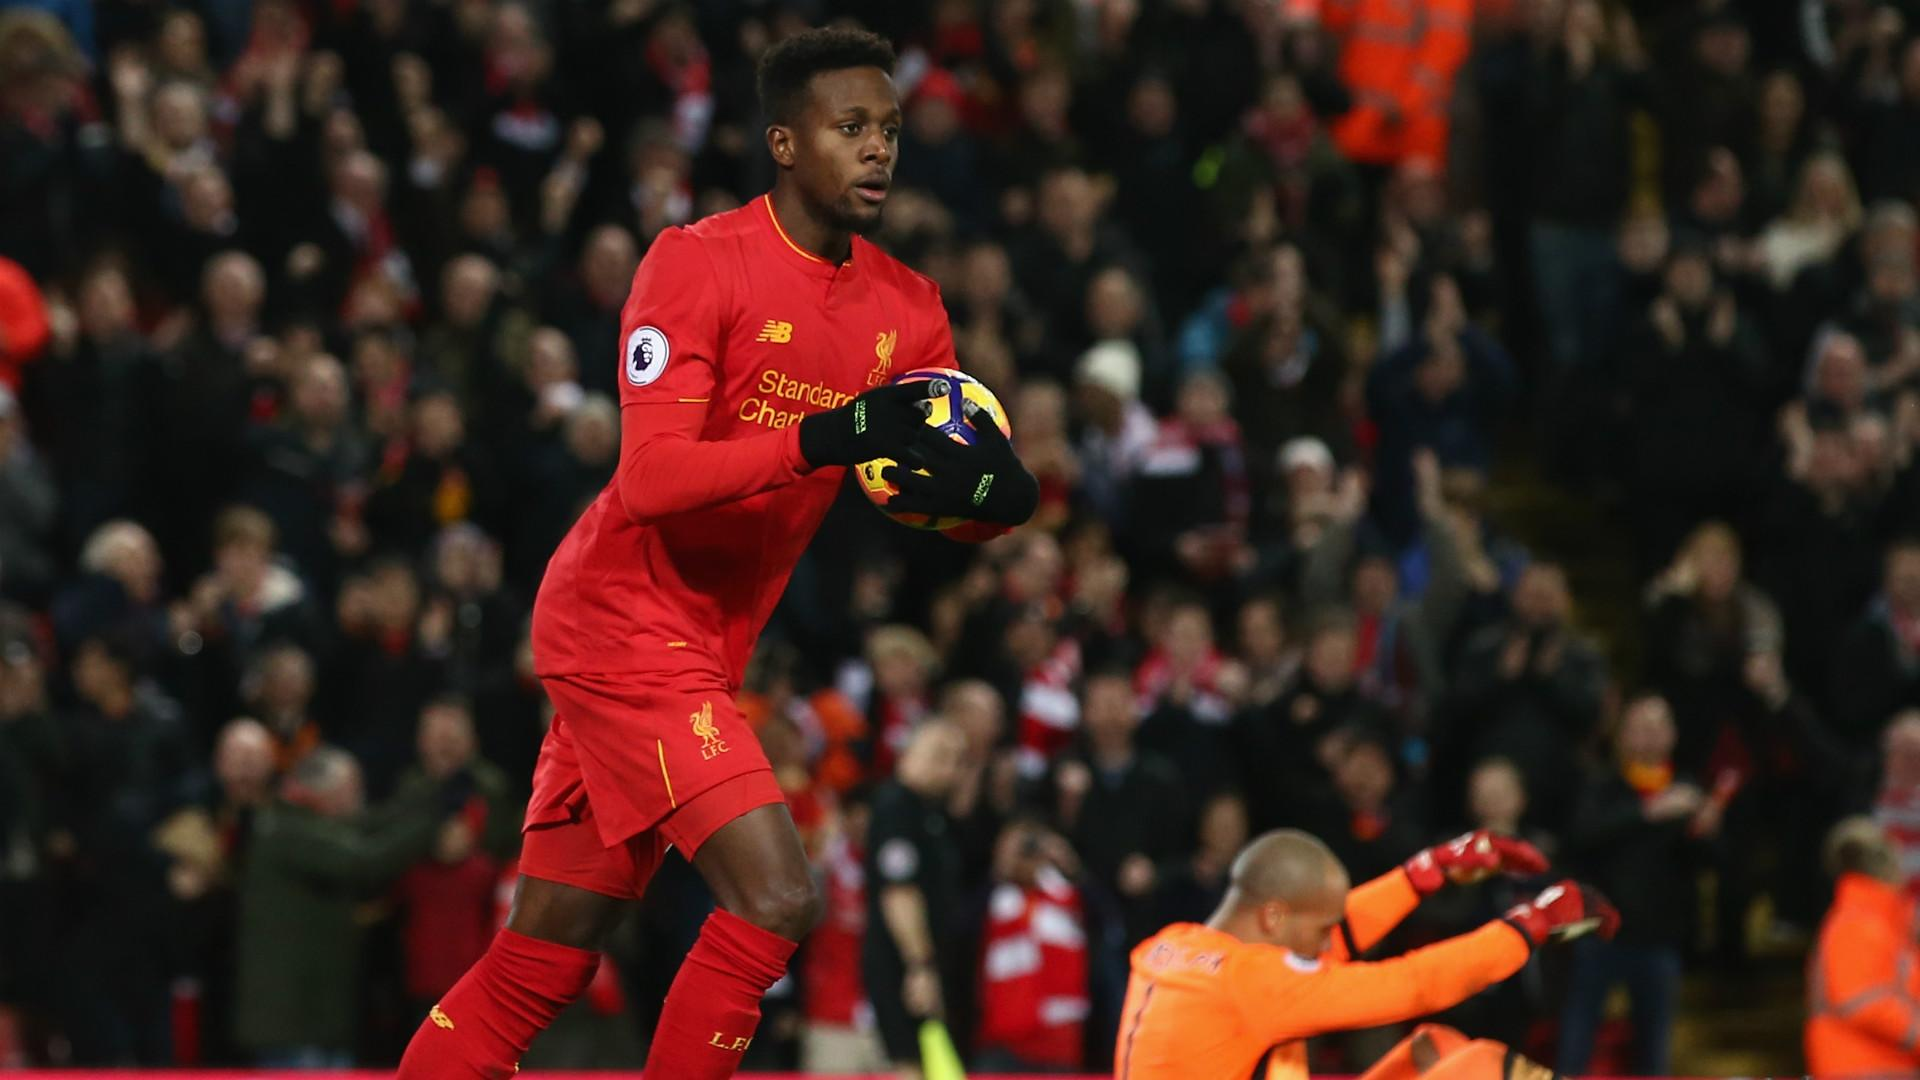 Origi becomes first Liverpool player to score in four or more consecutive matches since Sturridge